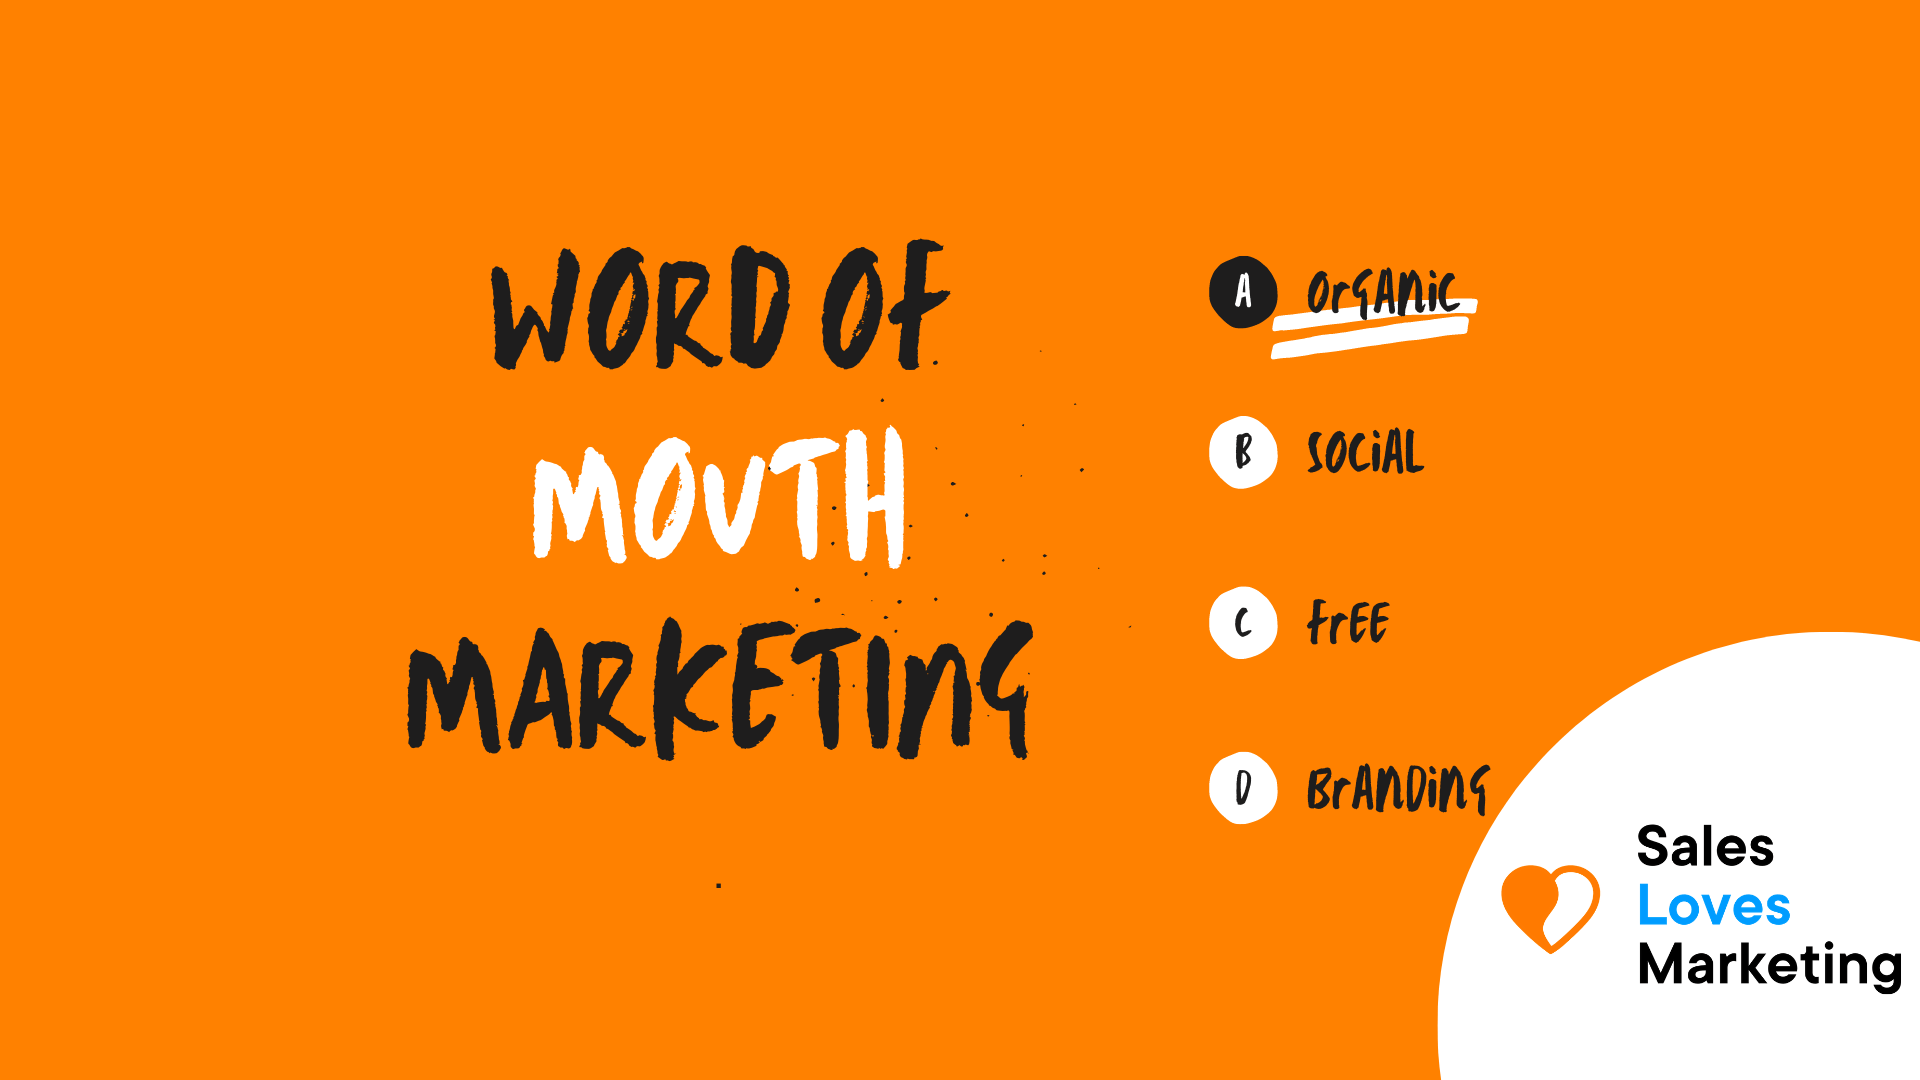 Worth Of Mouth Marketing (WOMM)